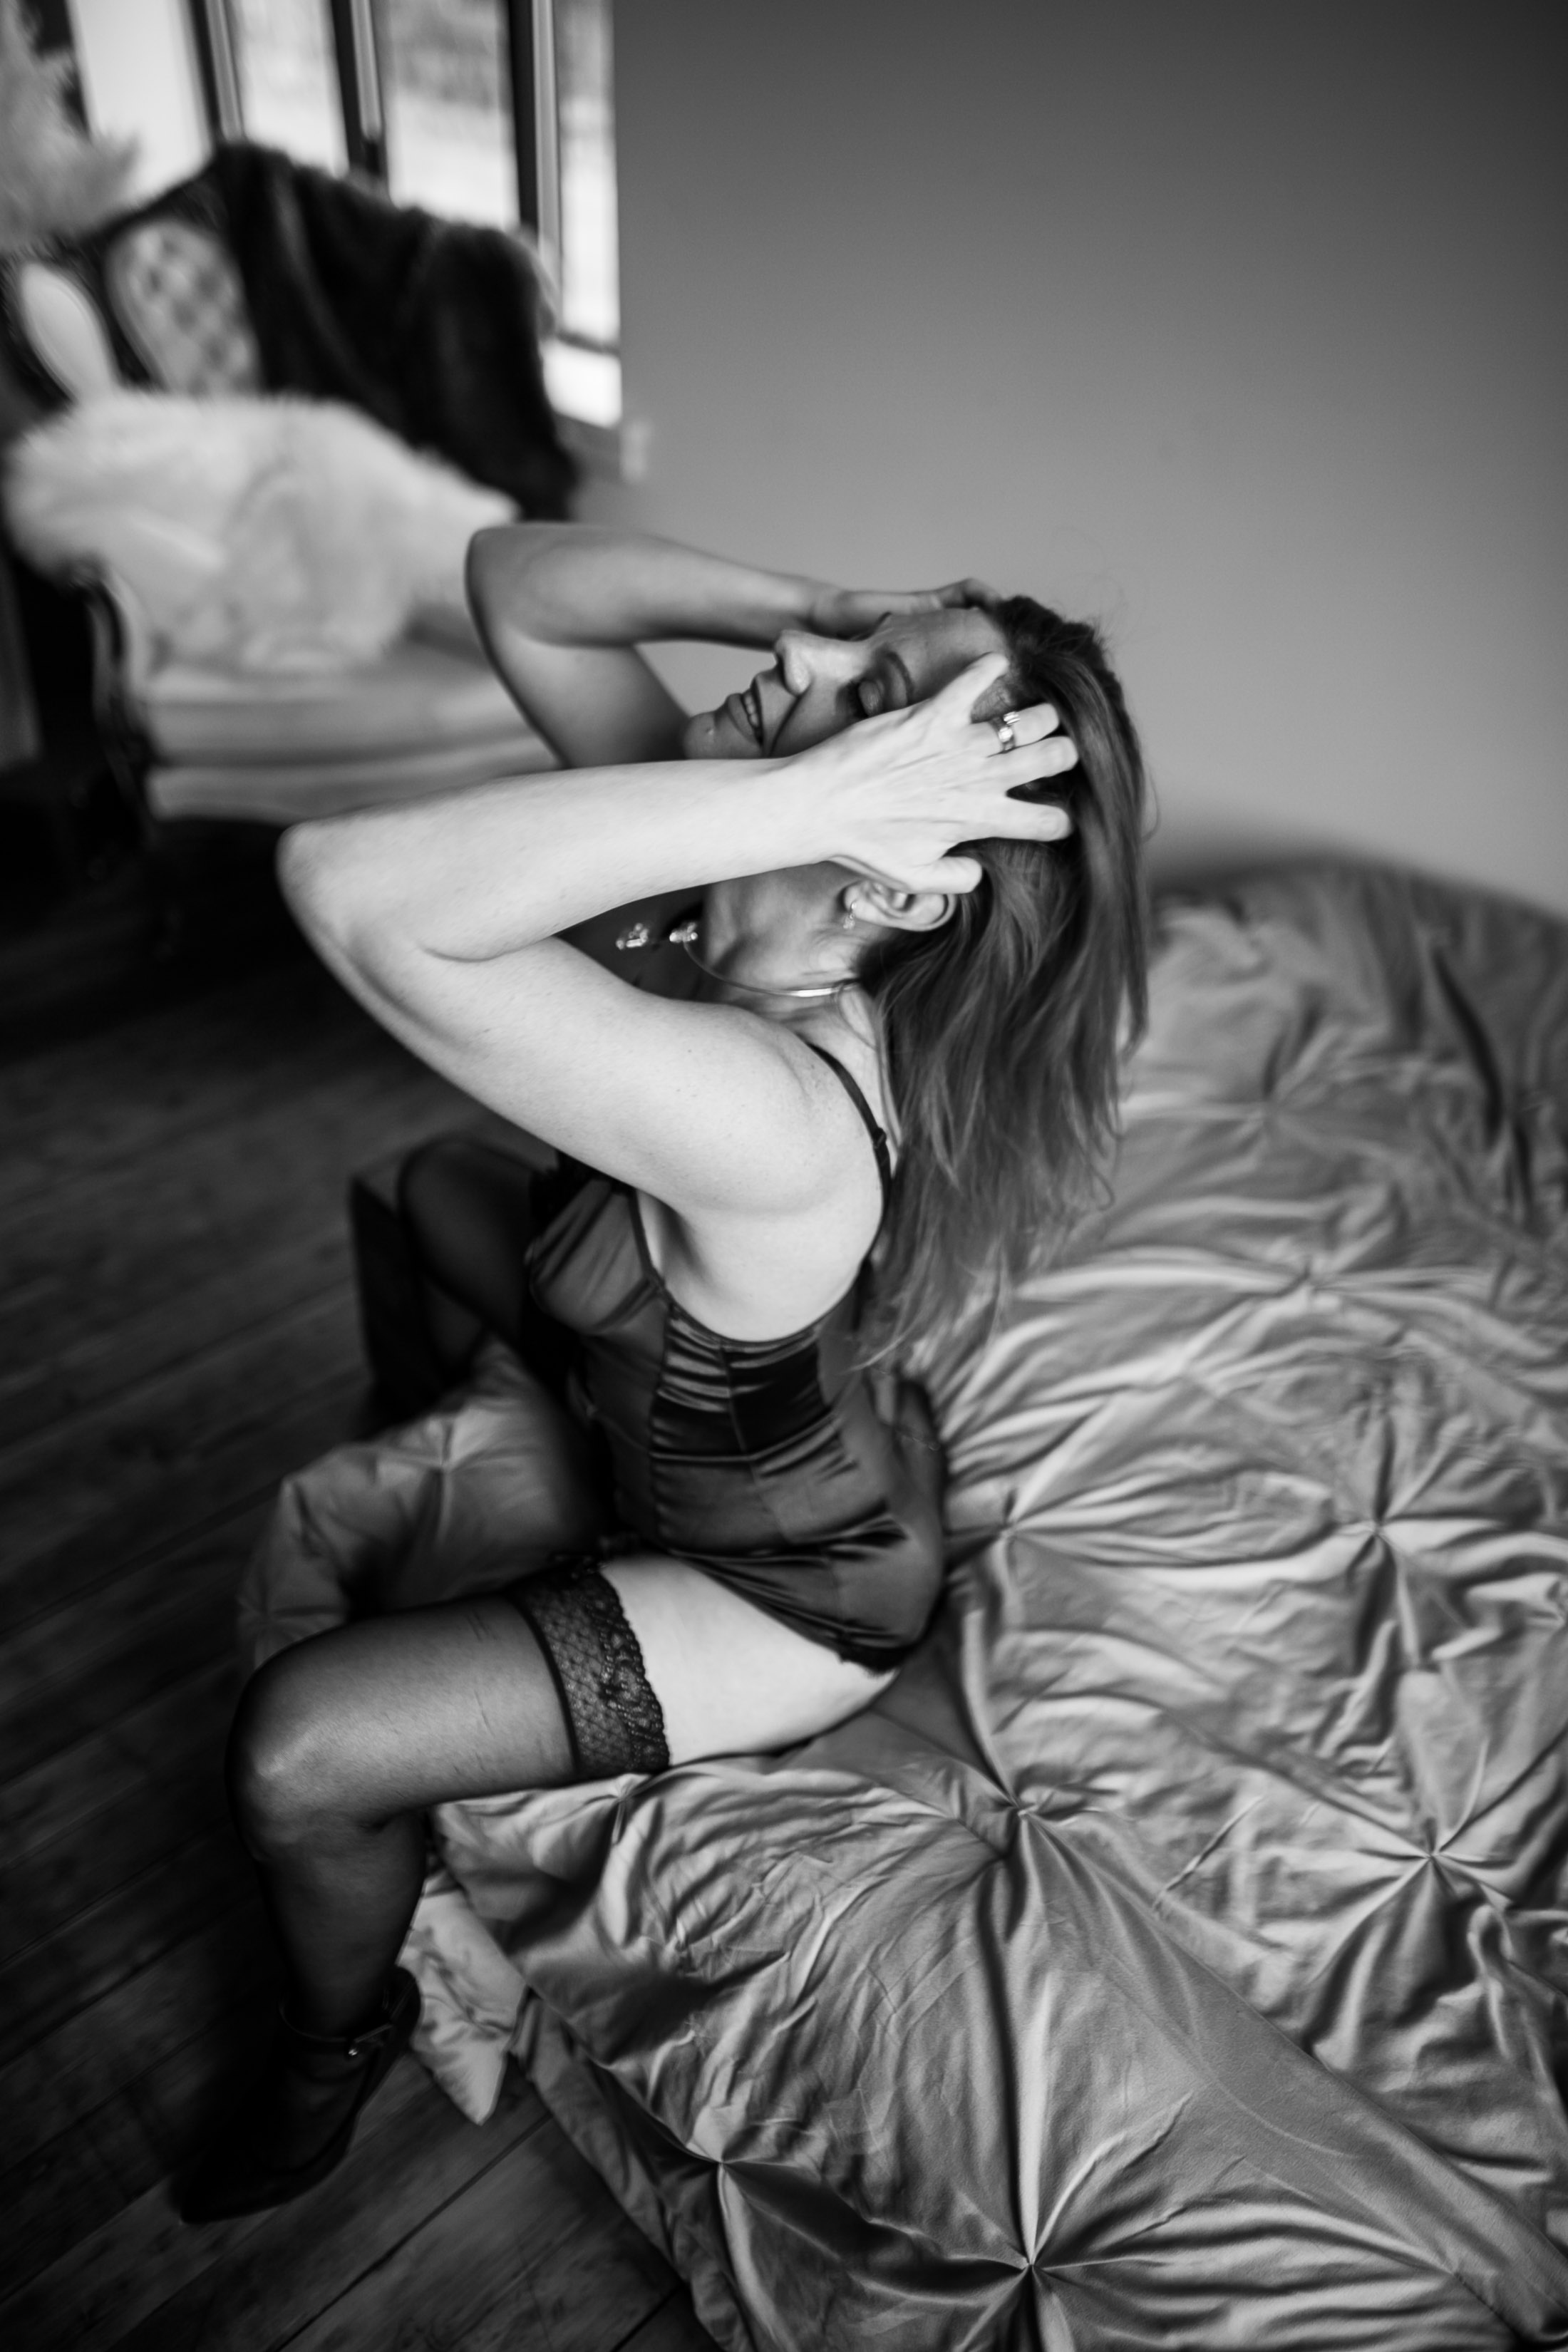 LGBTQ Boudoir Photographer in studio edgy boudoir shoot